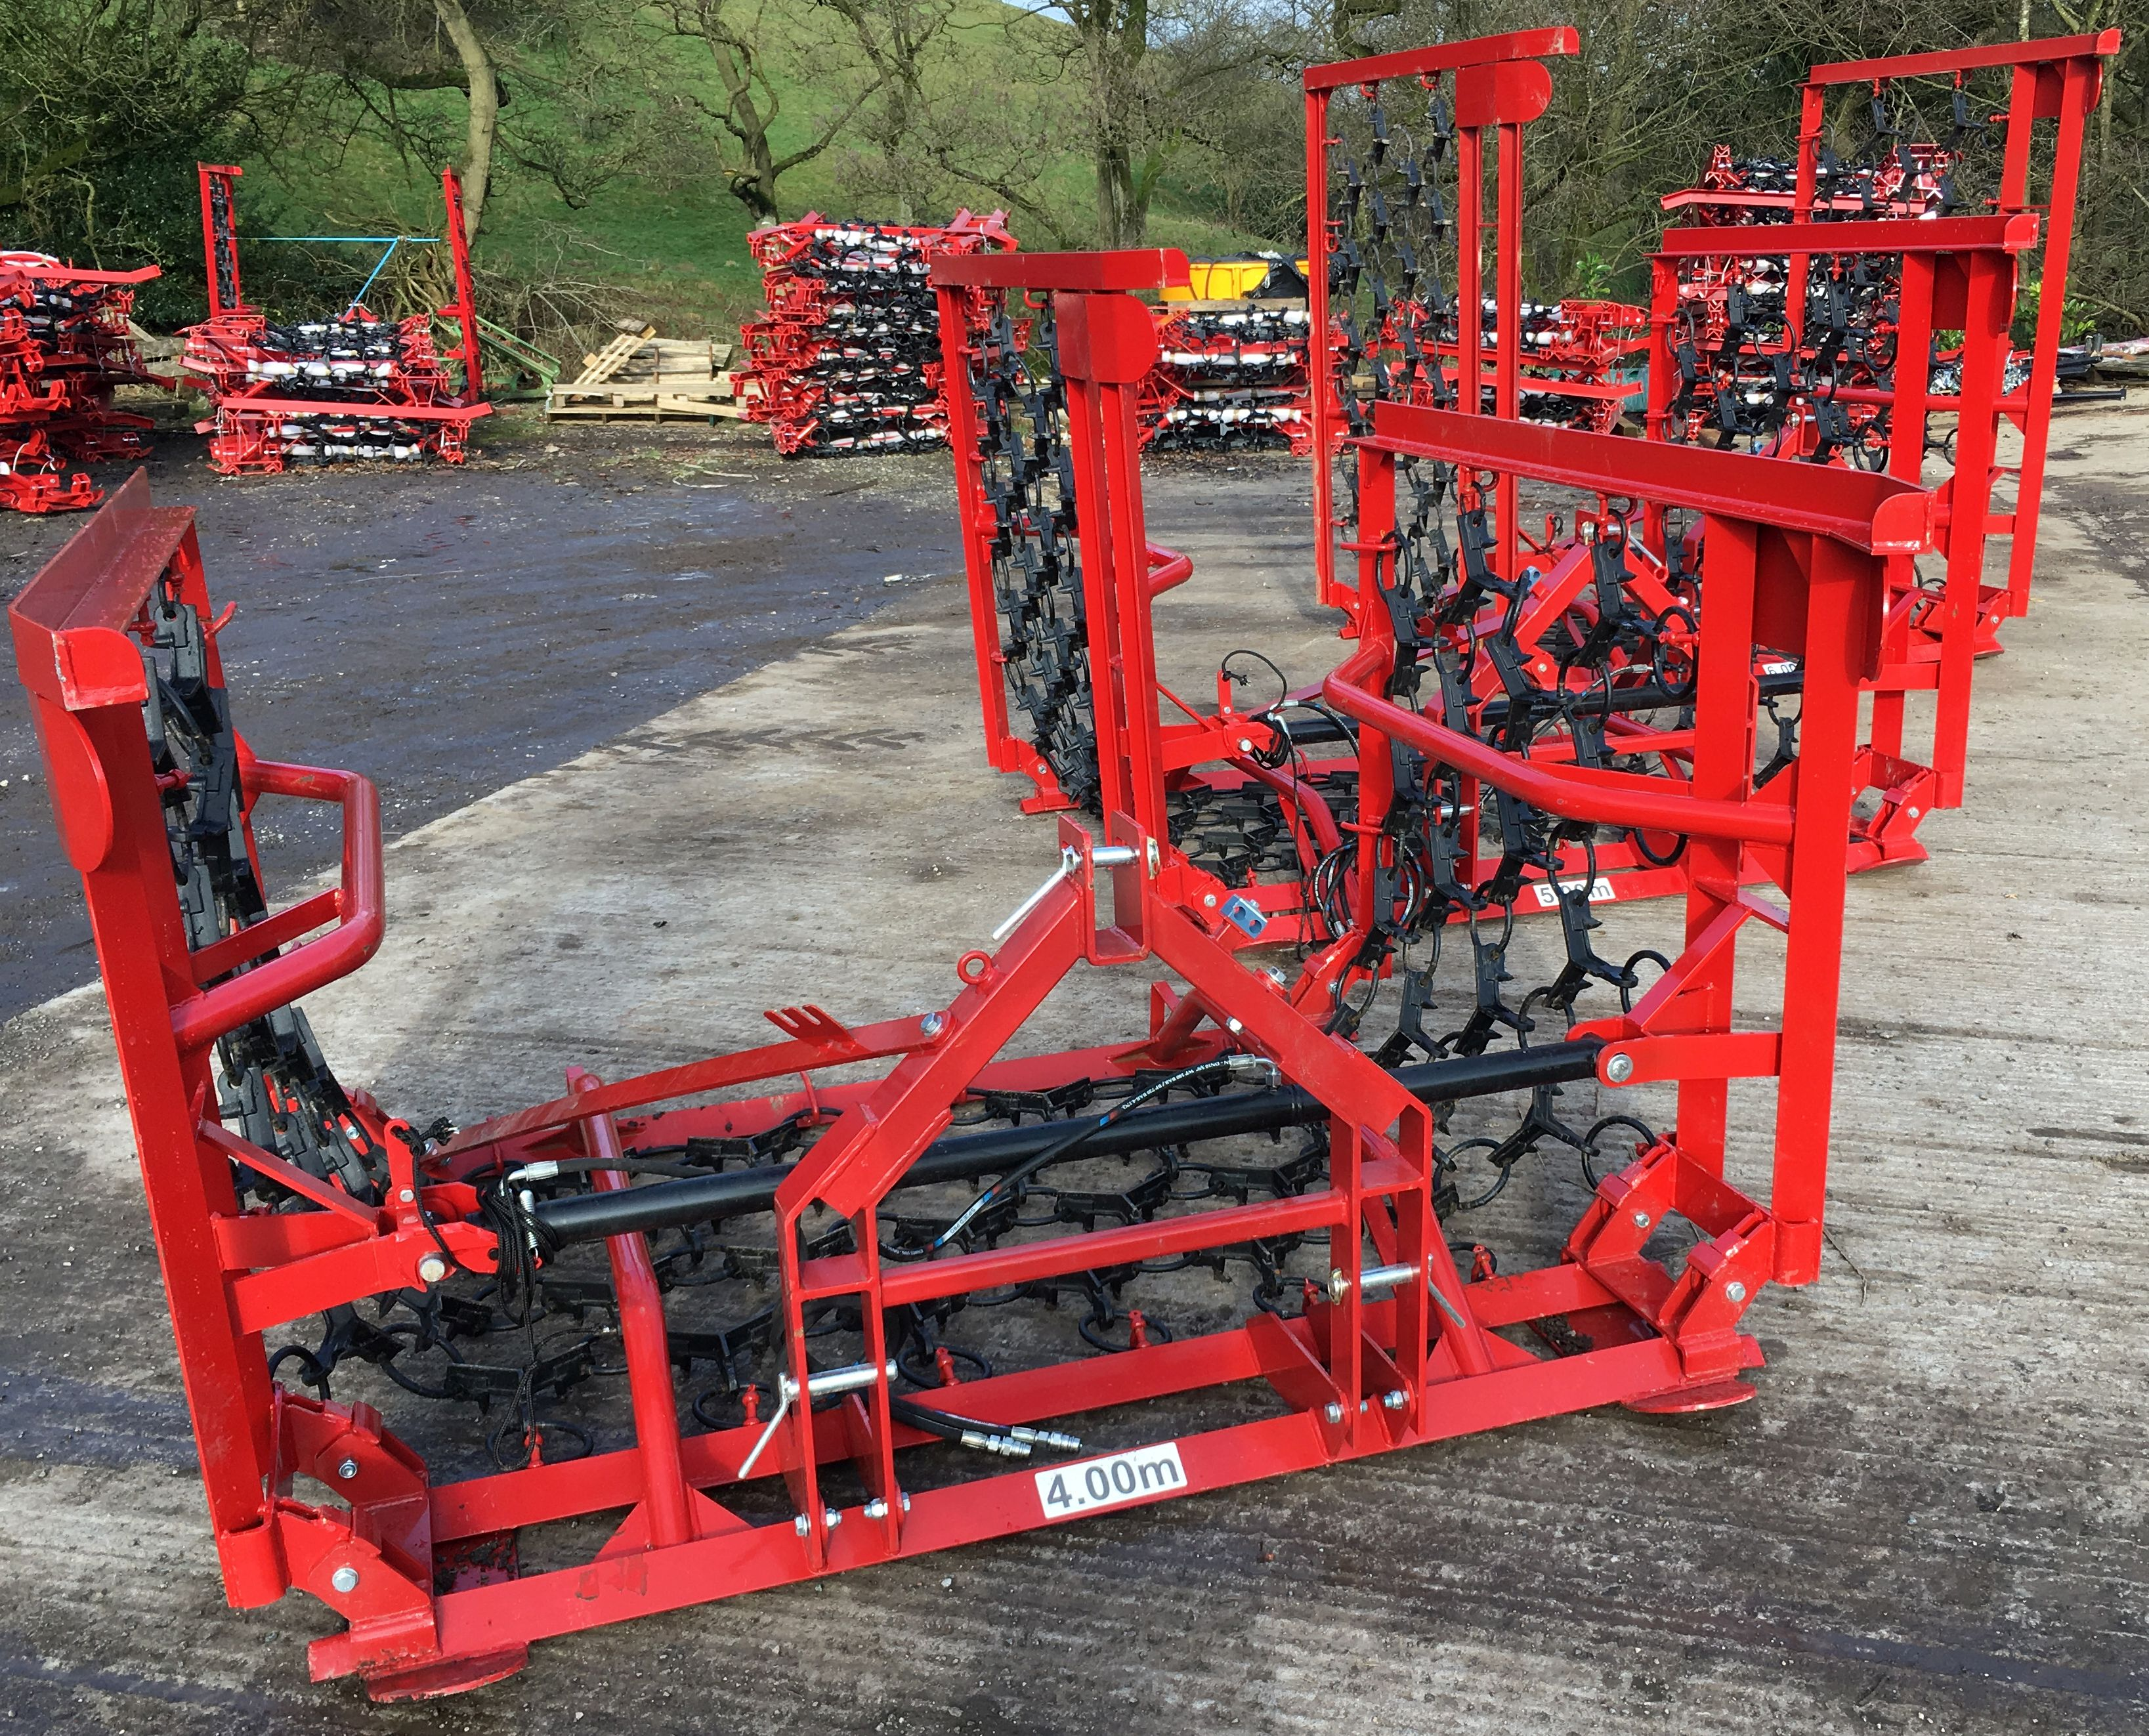 Used Tractors For Sale >> Jarmet Chain Harrows for Sale UK | Competitive Prices